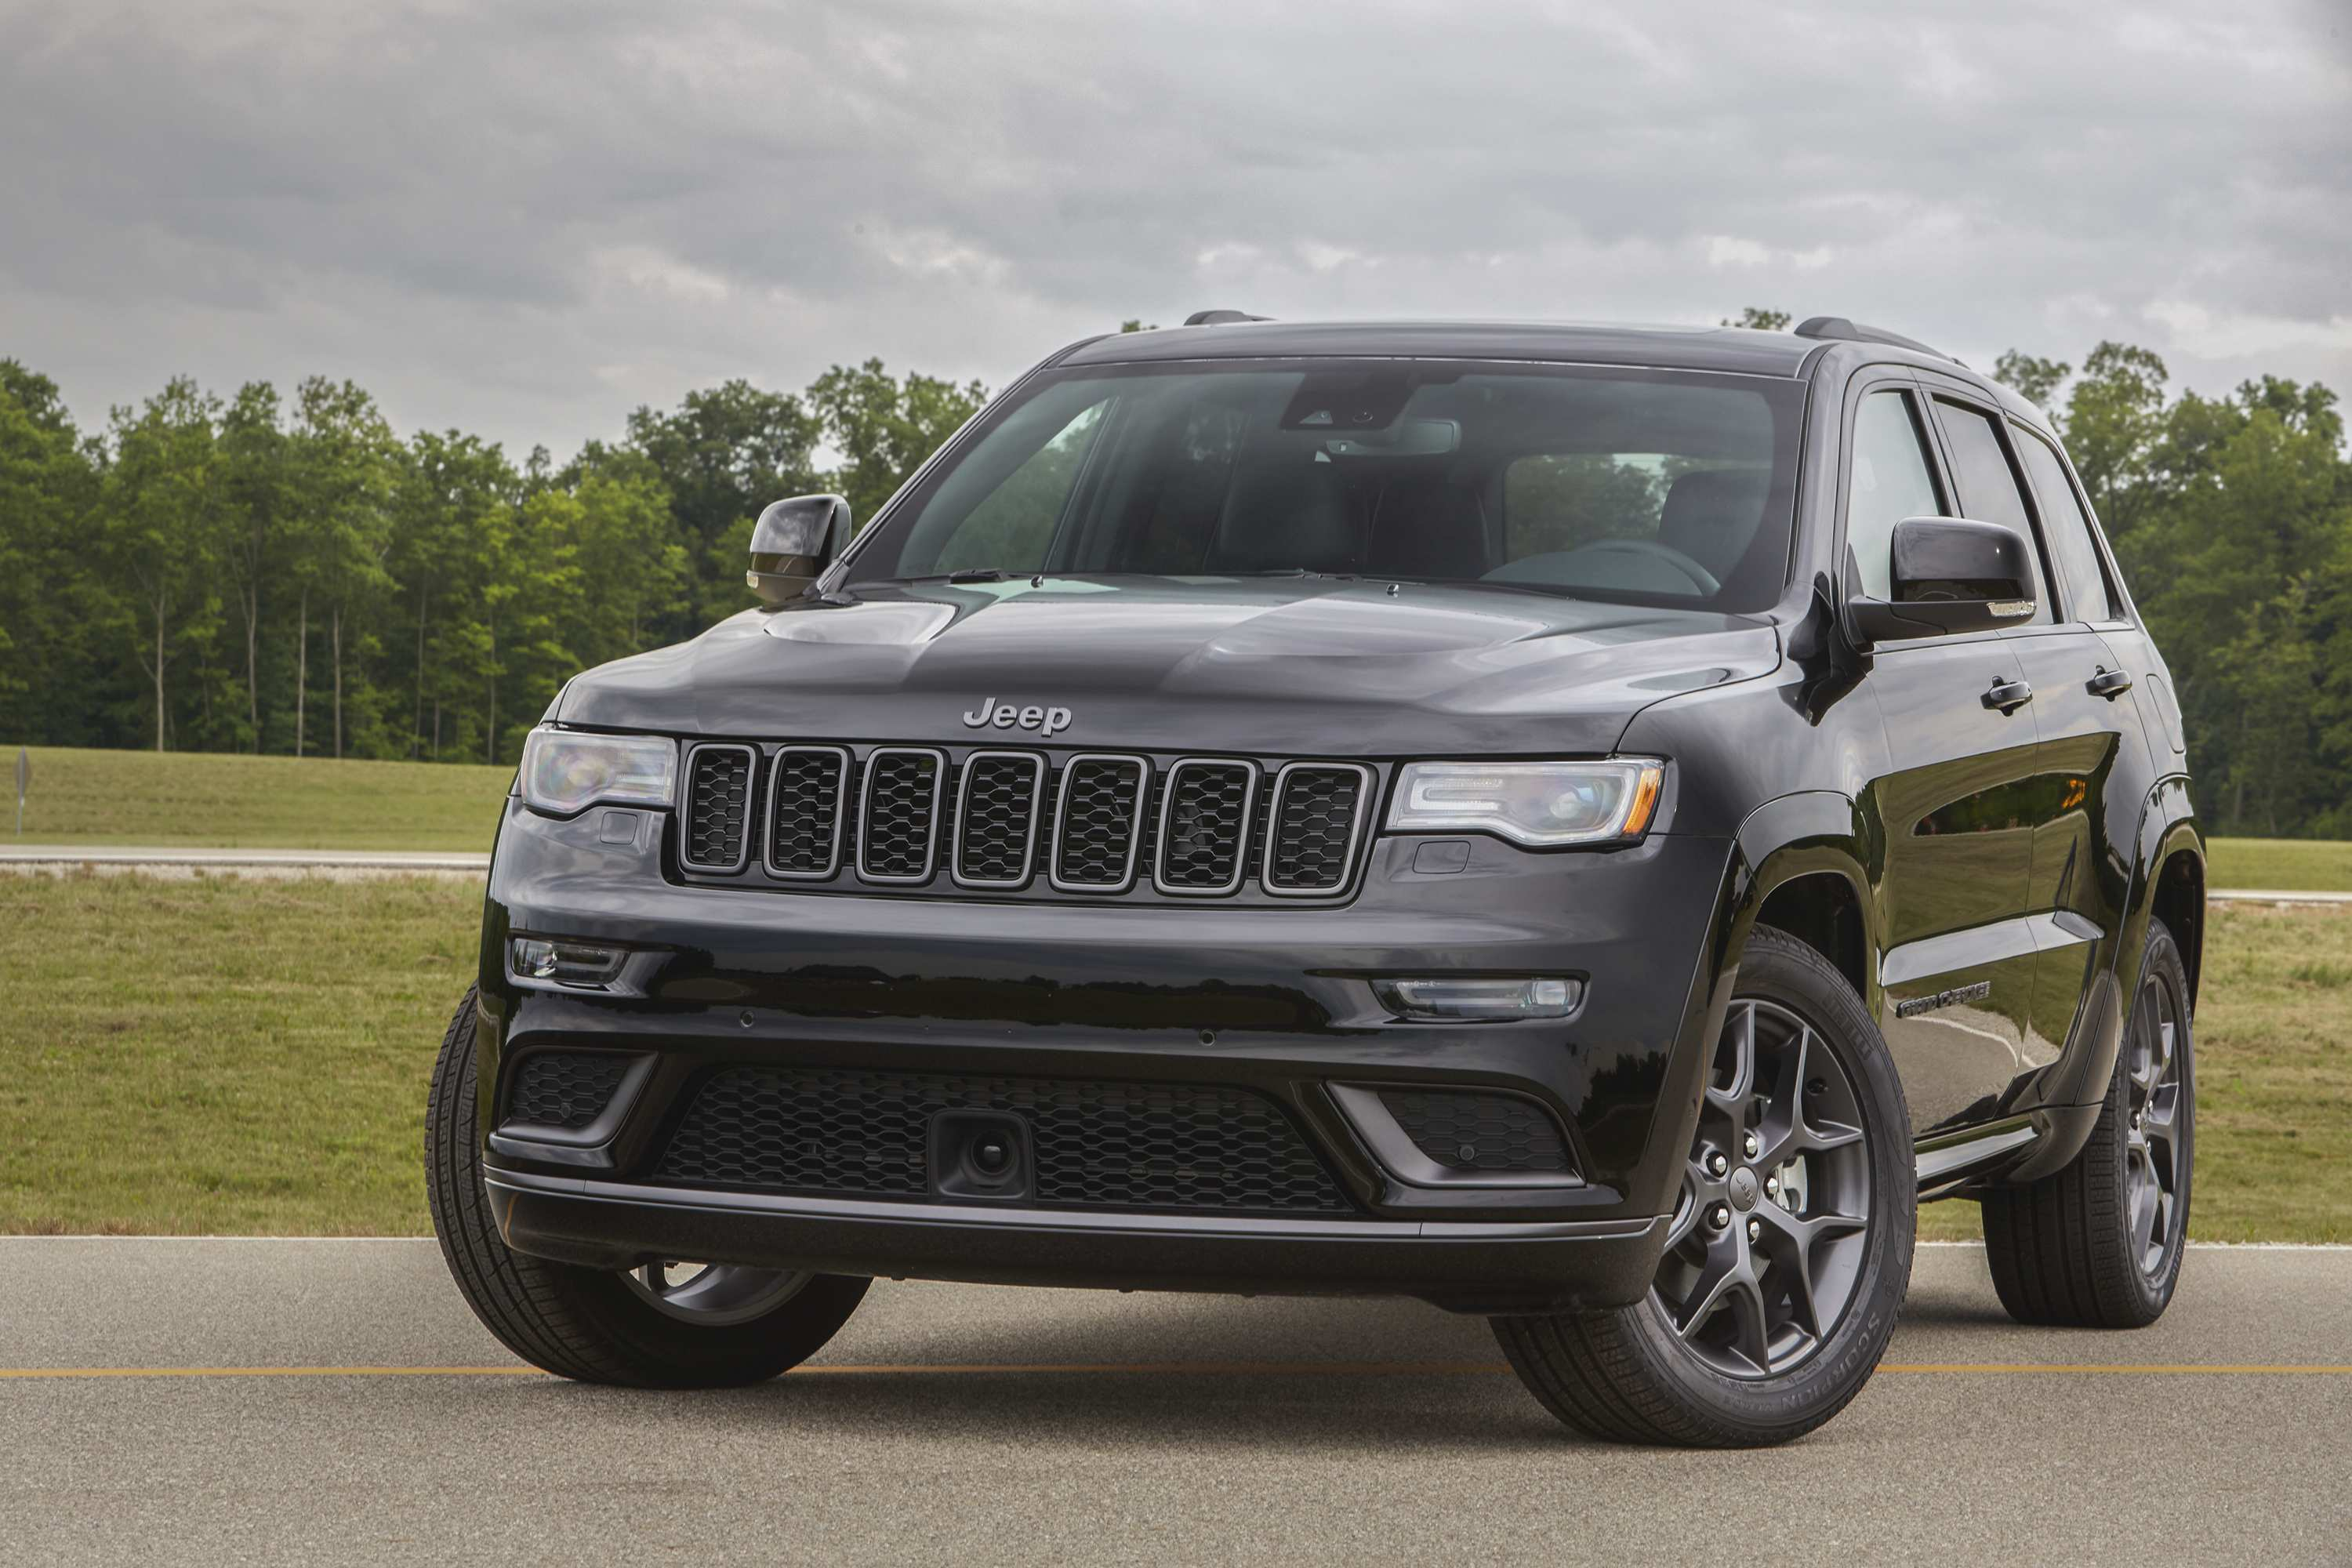 22 Gallery of Best Cherokee Jeep 2019 Redesign And Concept History with Best Cherokee Jeep 2019 Redesign And Concept